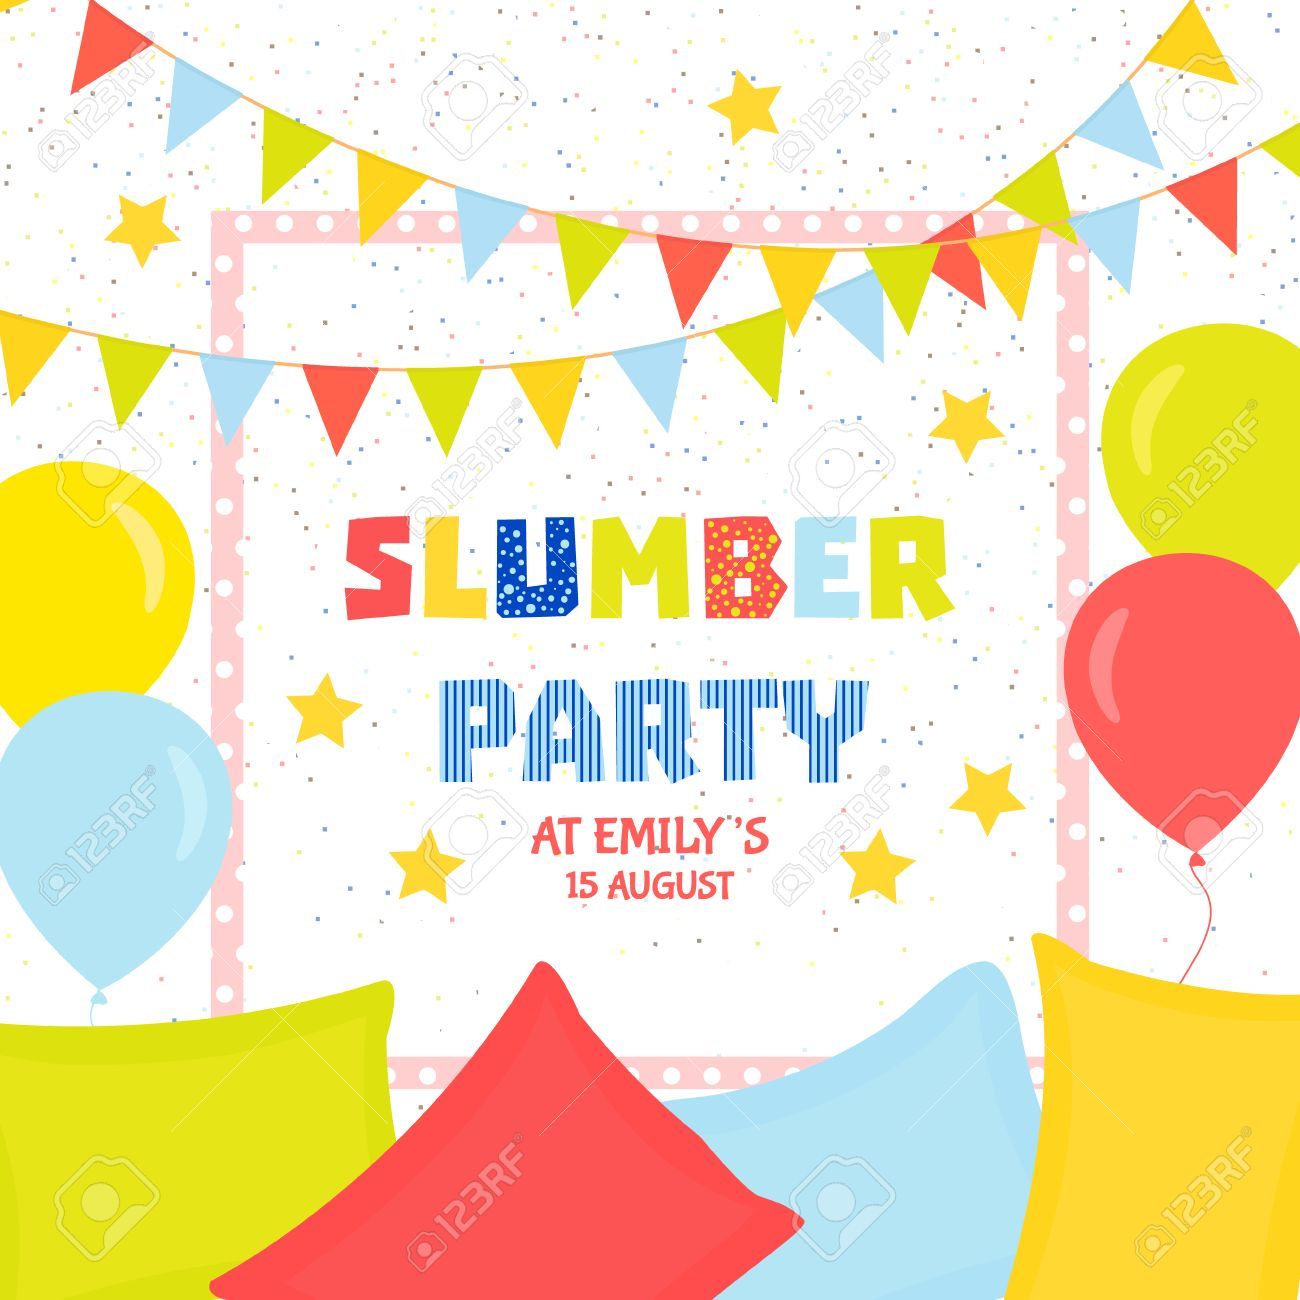 Slumber Party Invitation Template With Colorful Flags Balloons – Sleepover Party Invitations Templates